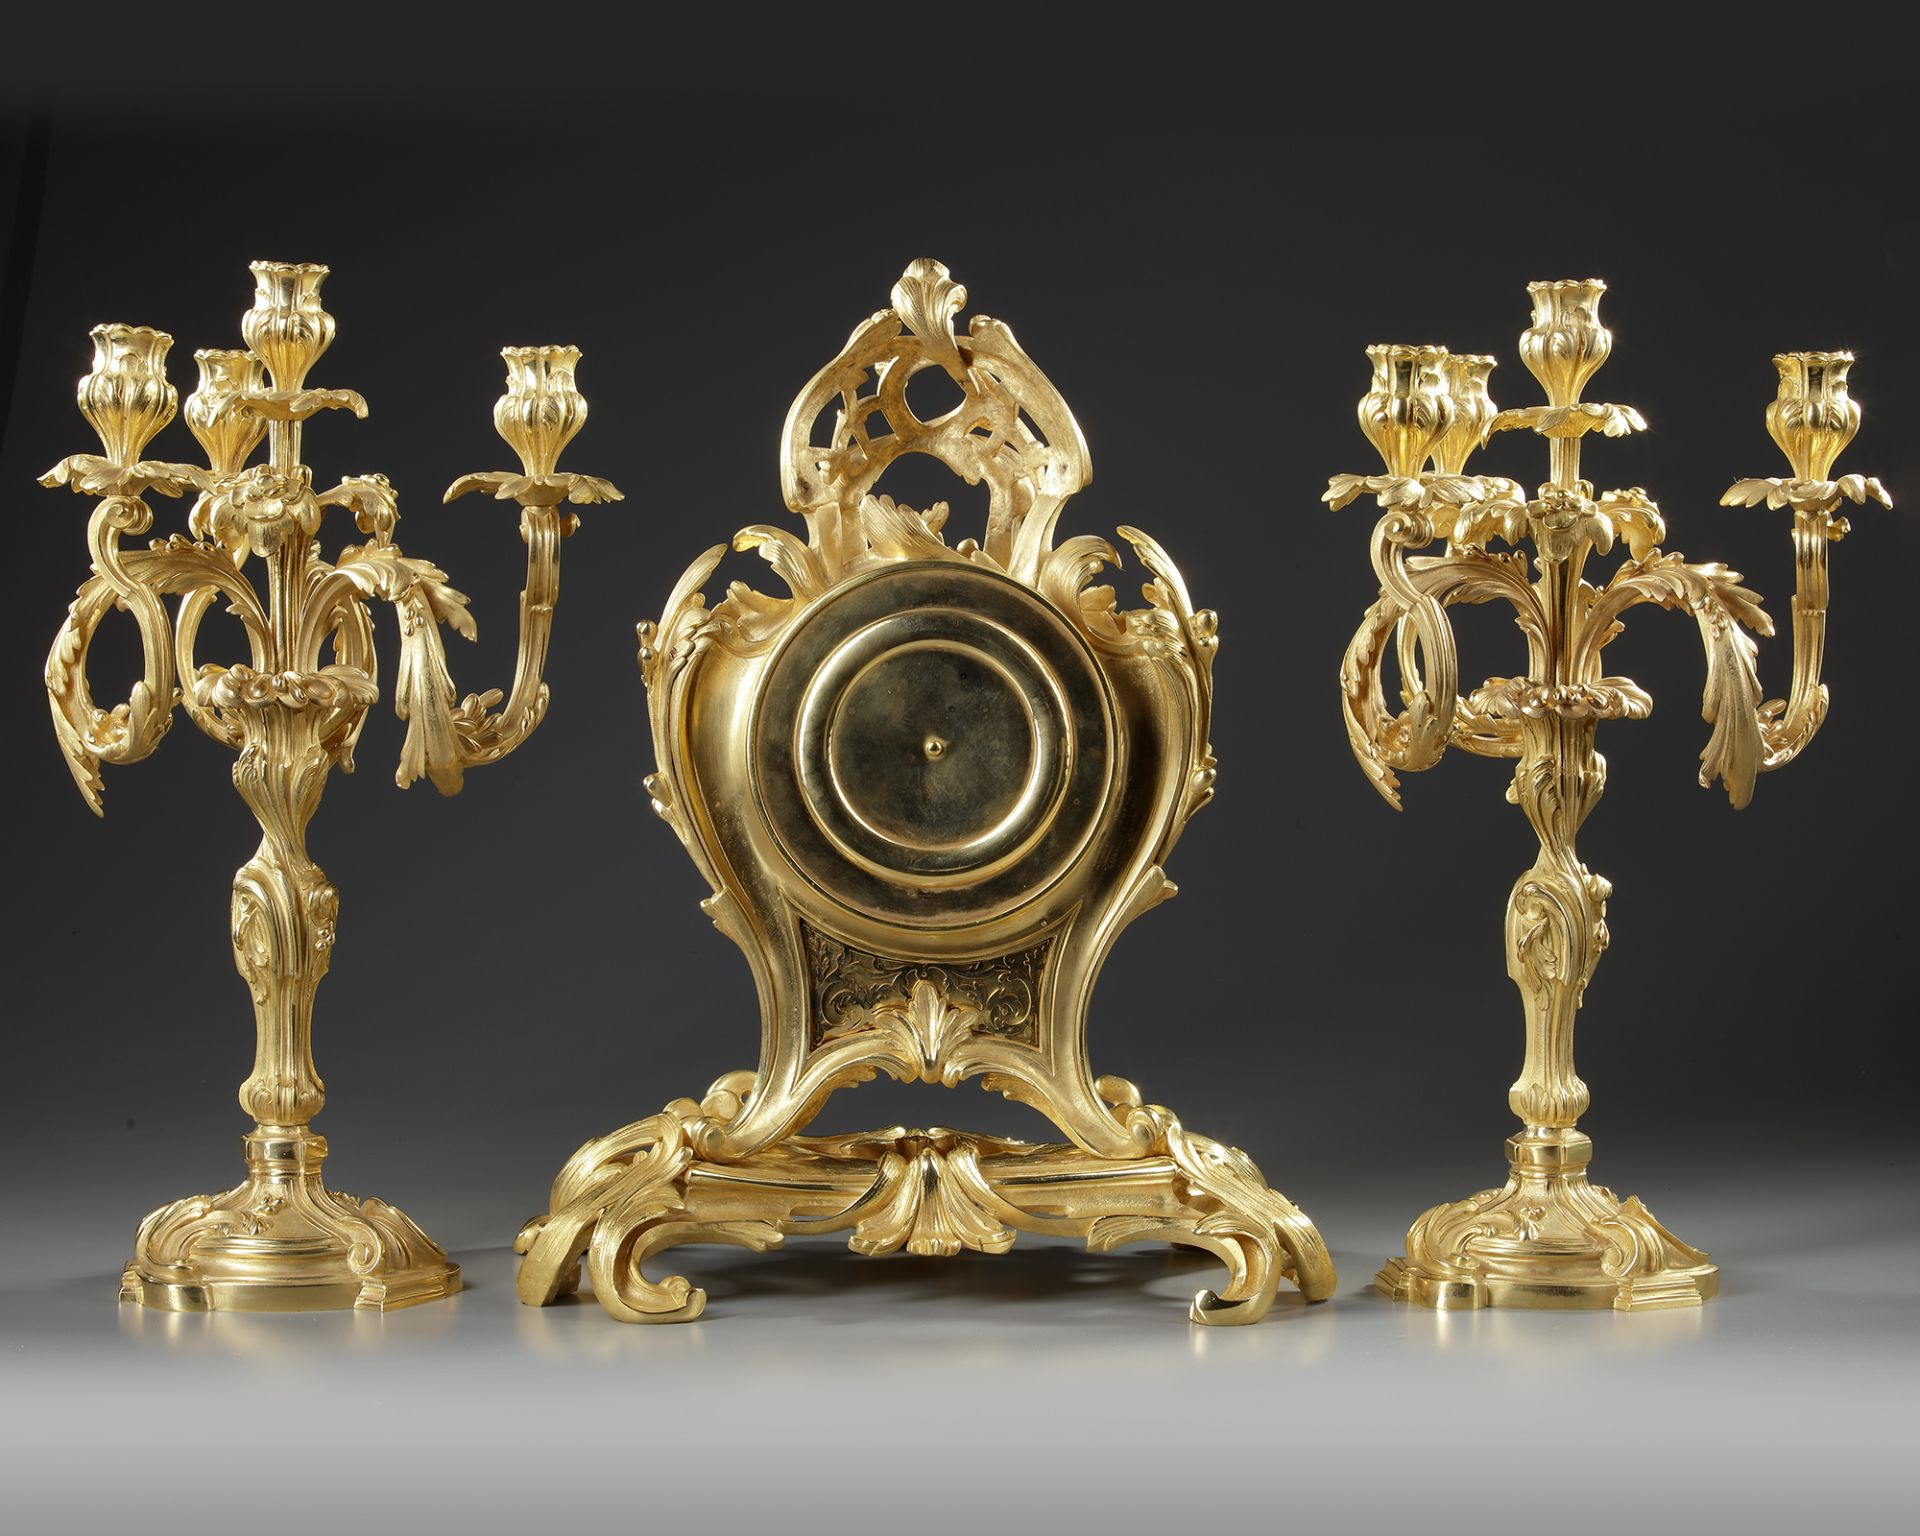 A FRENCH ORMOLU CLOCK SET, 19TH CENTURY - Image 3 of 3